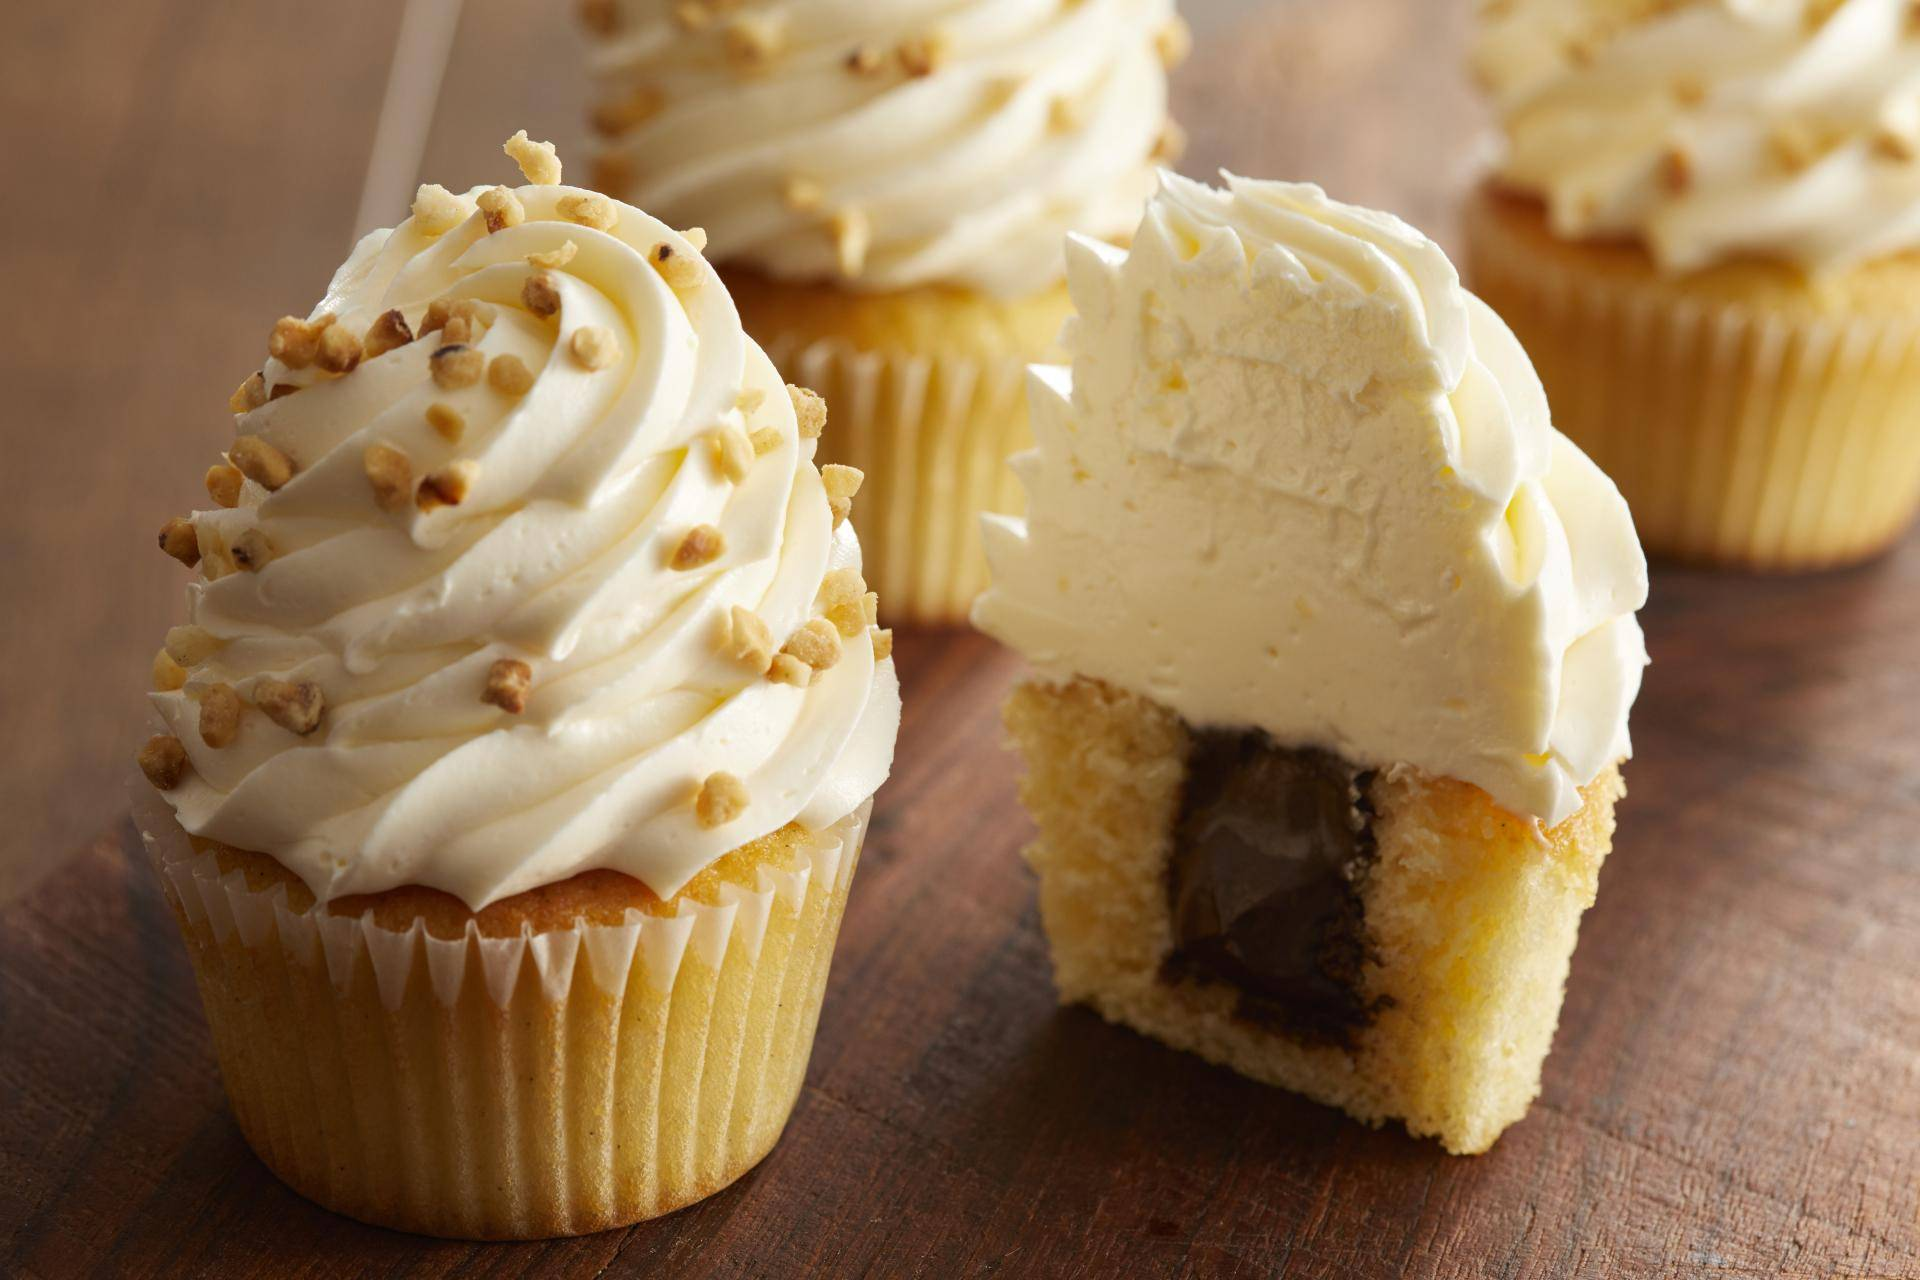 Almond Cupcakes with Almond Buttercream